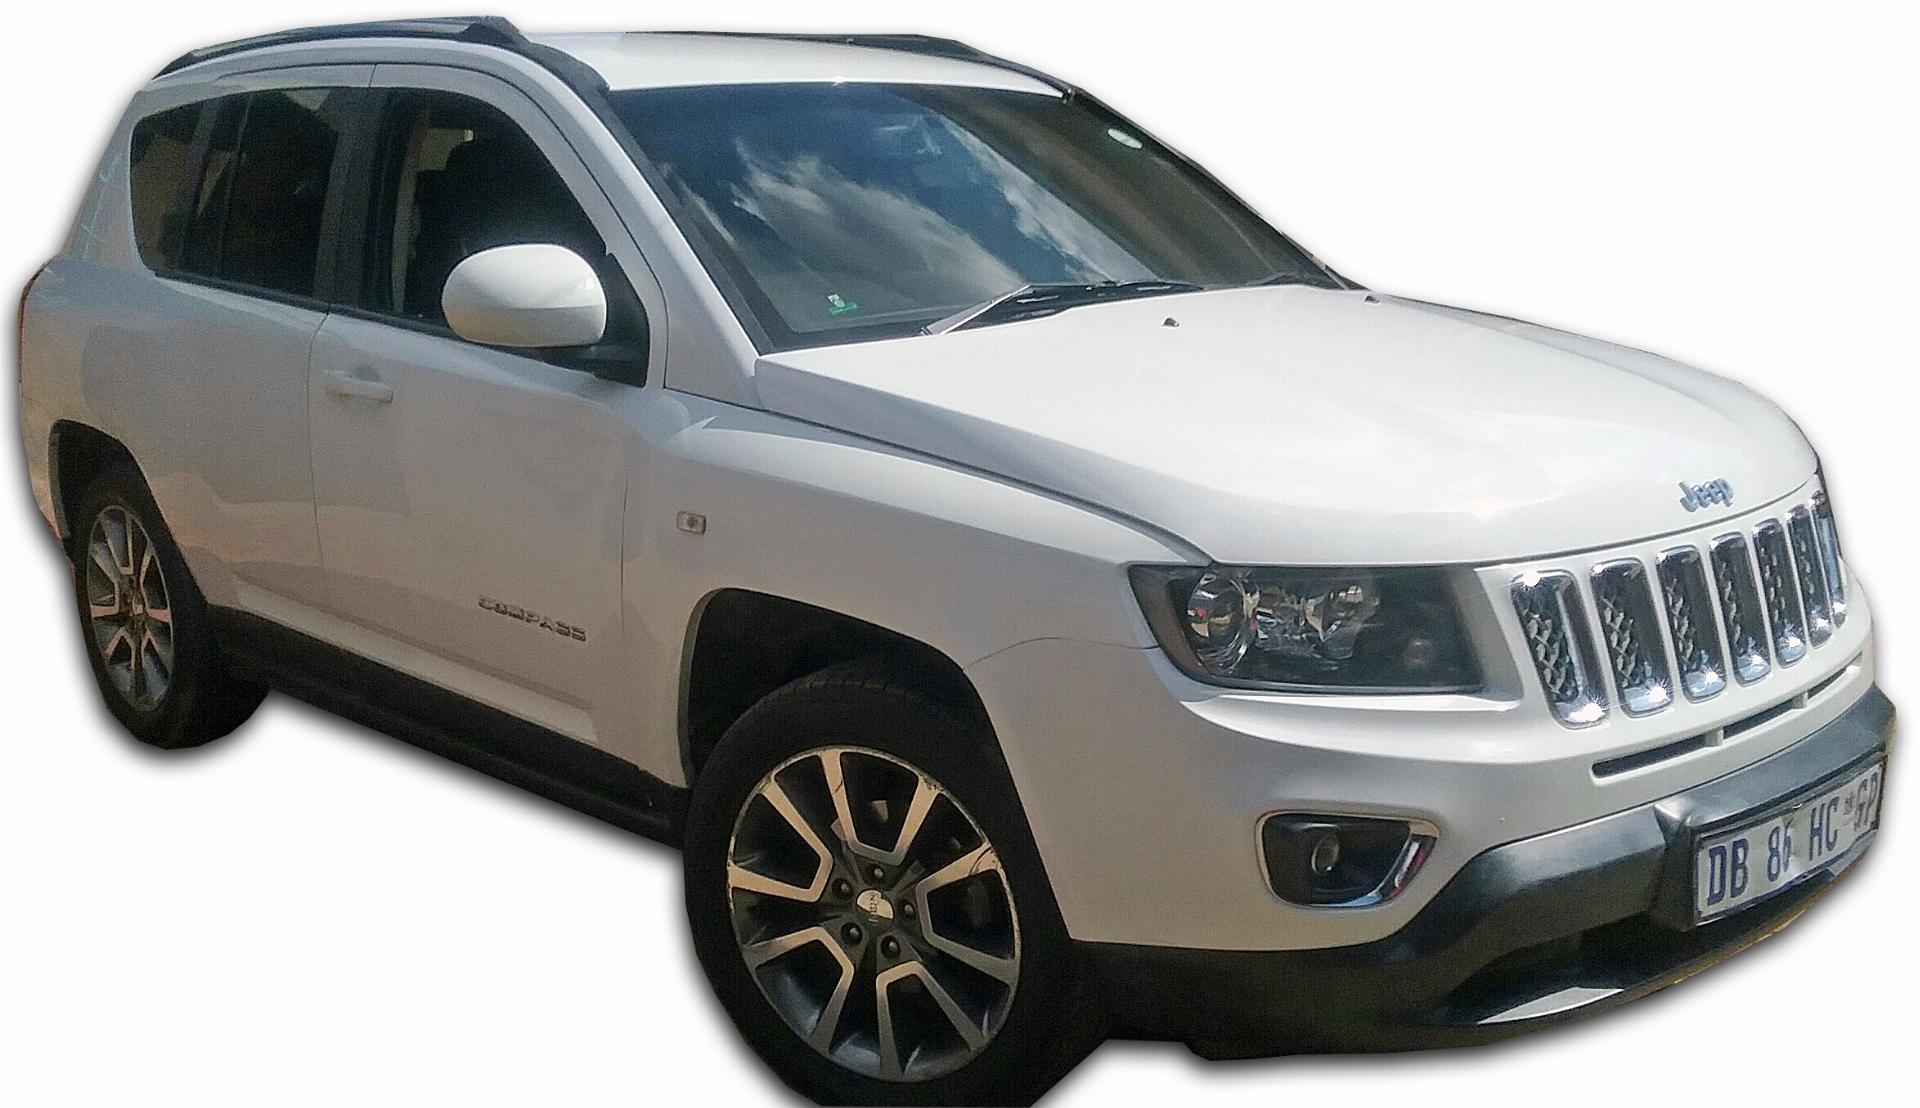 Jeep Compass 2.0 CVT LTD